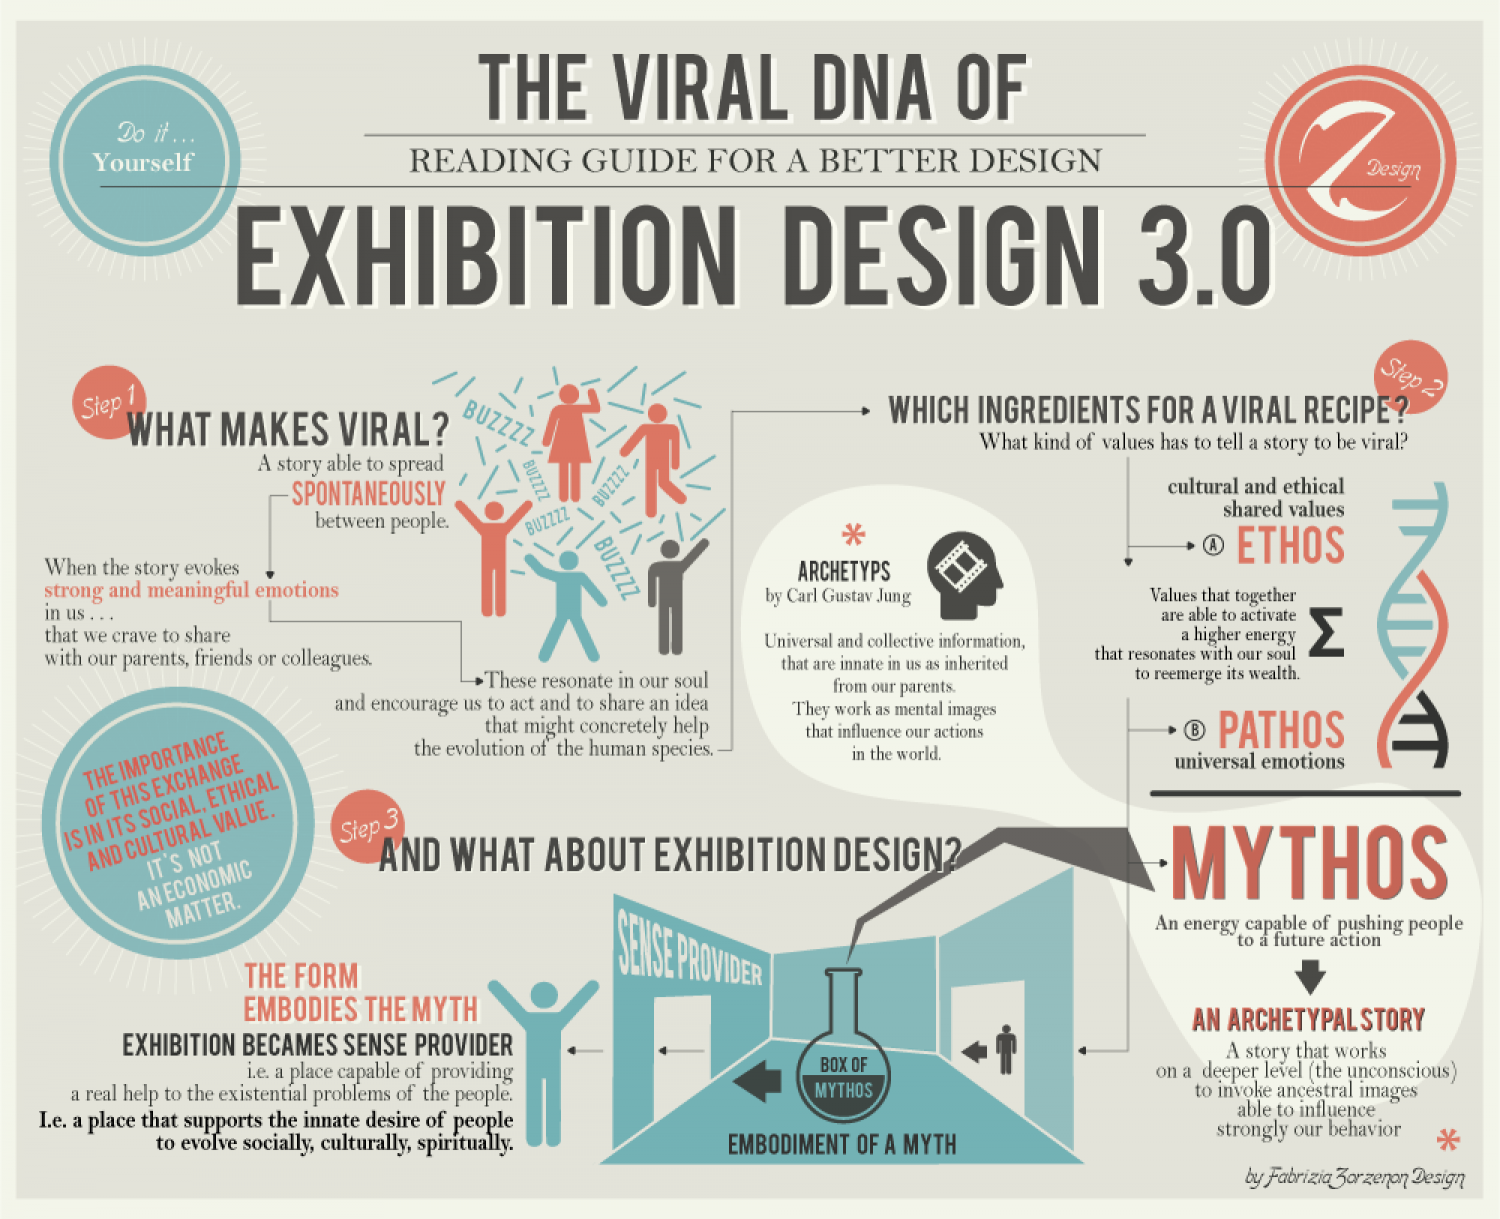 The Viral DNA of Exhibition Design 3.0 Infographic